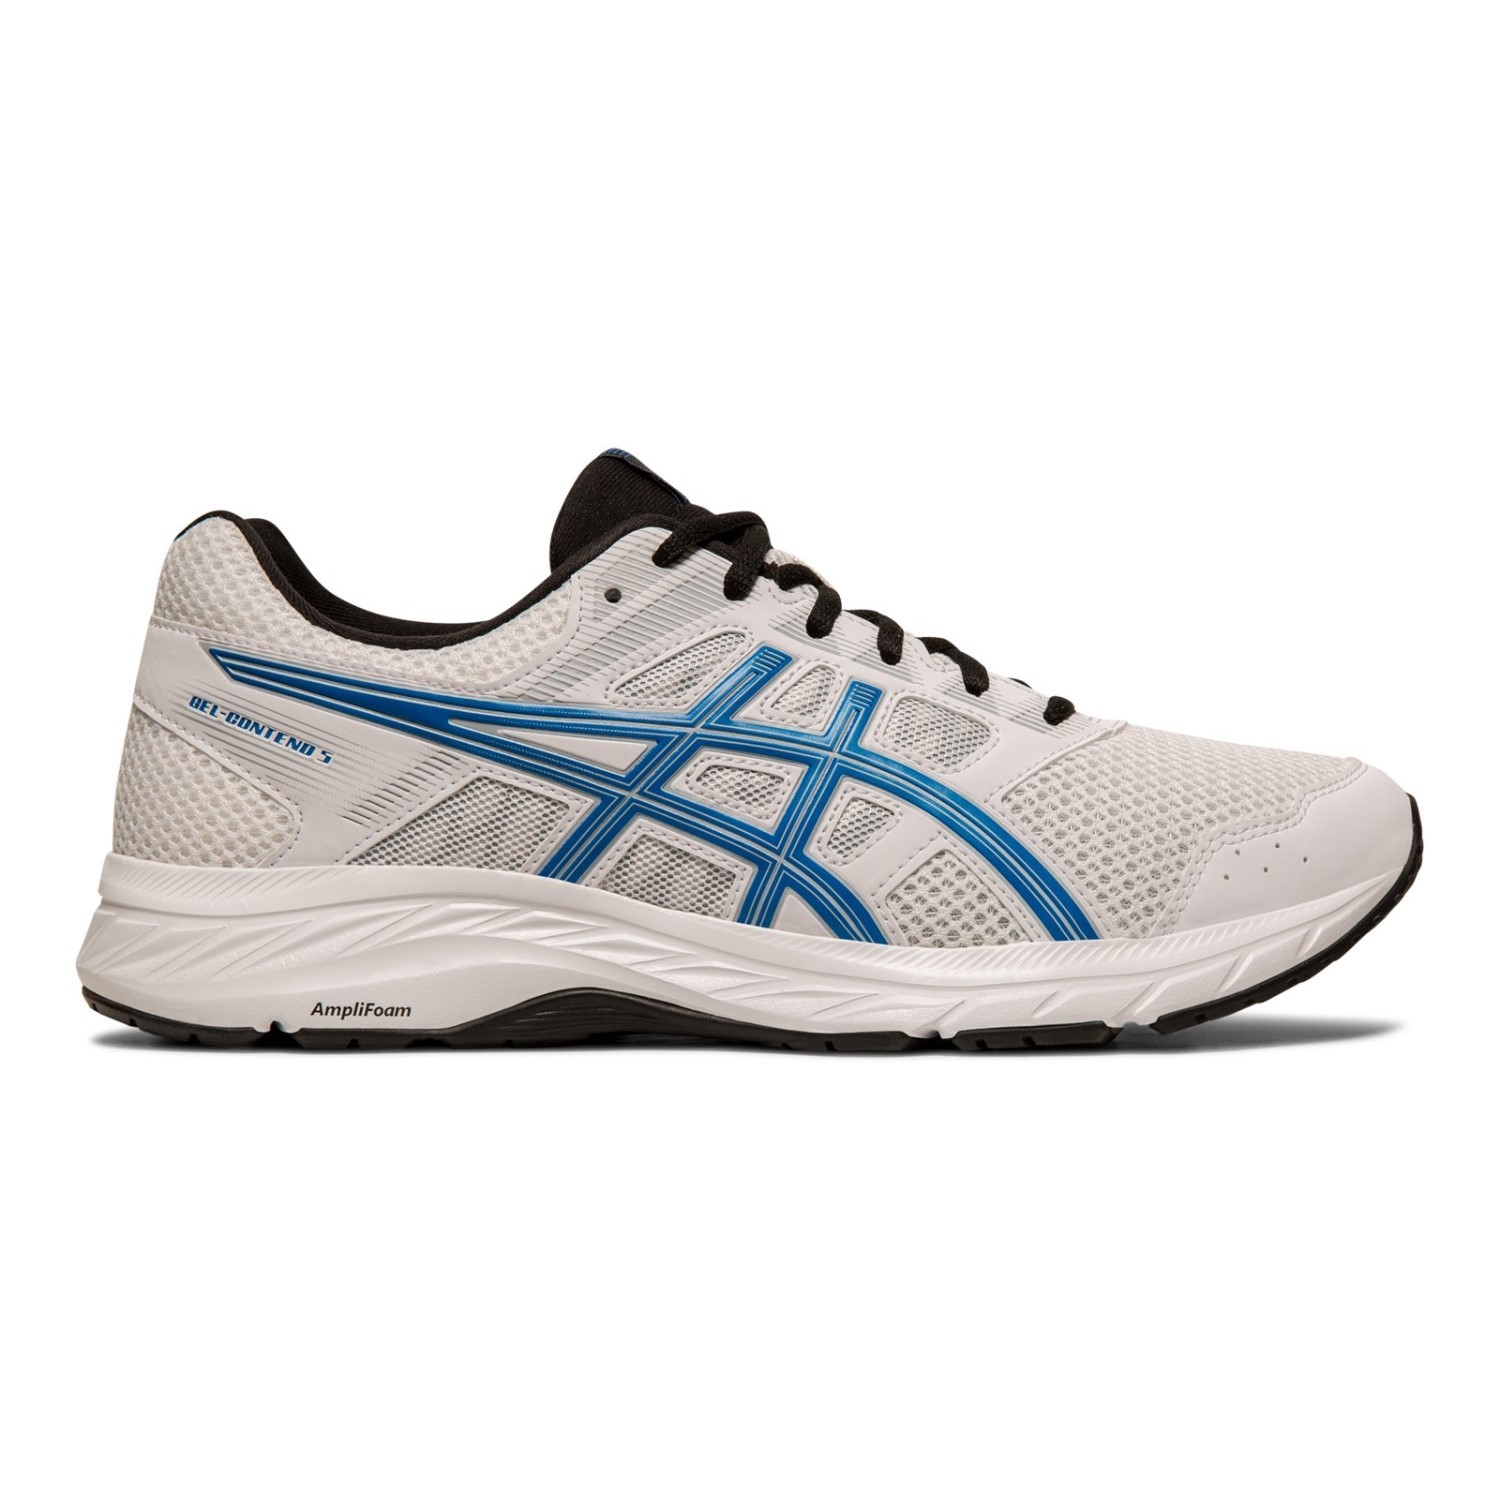 90d4678e1 Asics Gel Contend 5 - Mens Running Shoes - White/Electric Blue ...